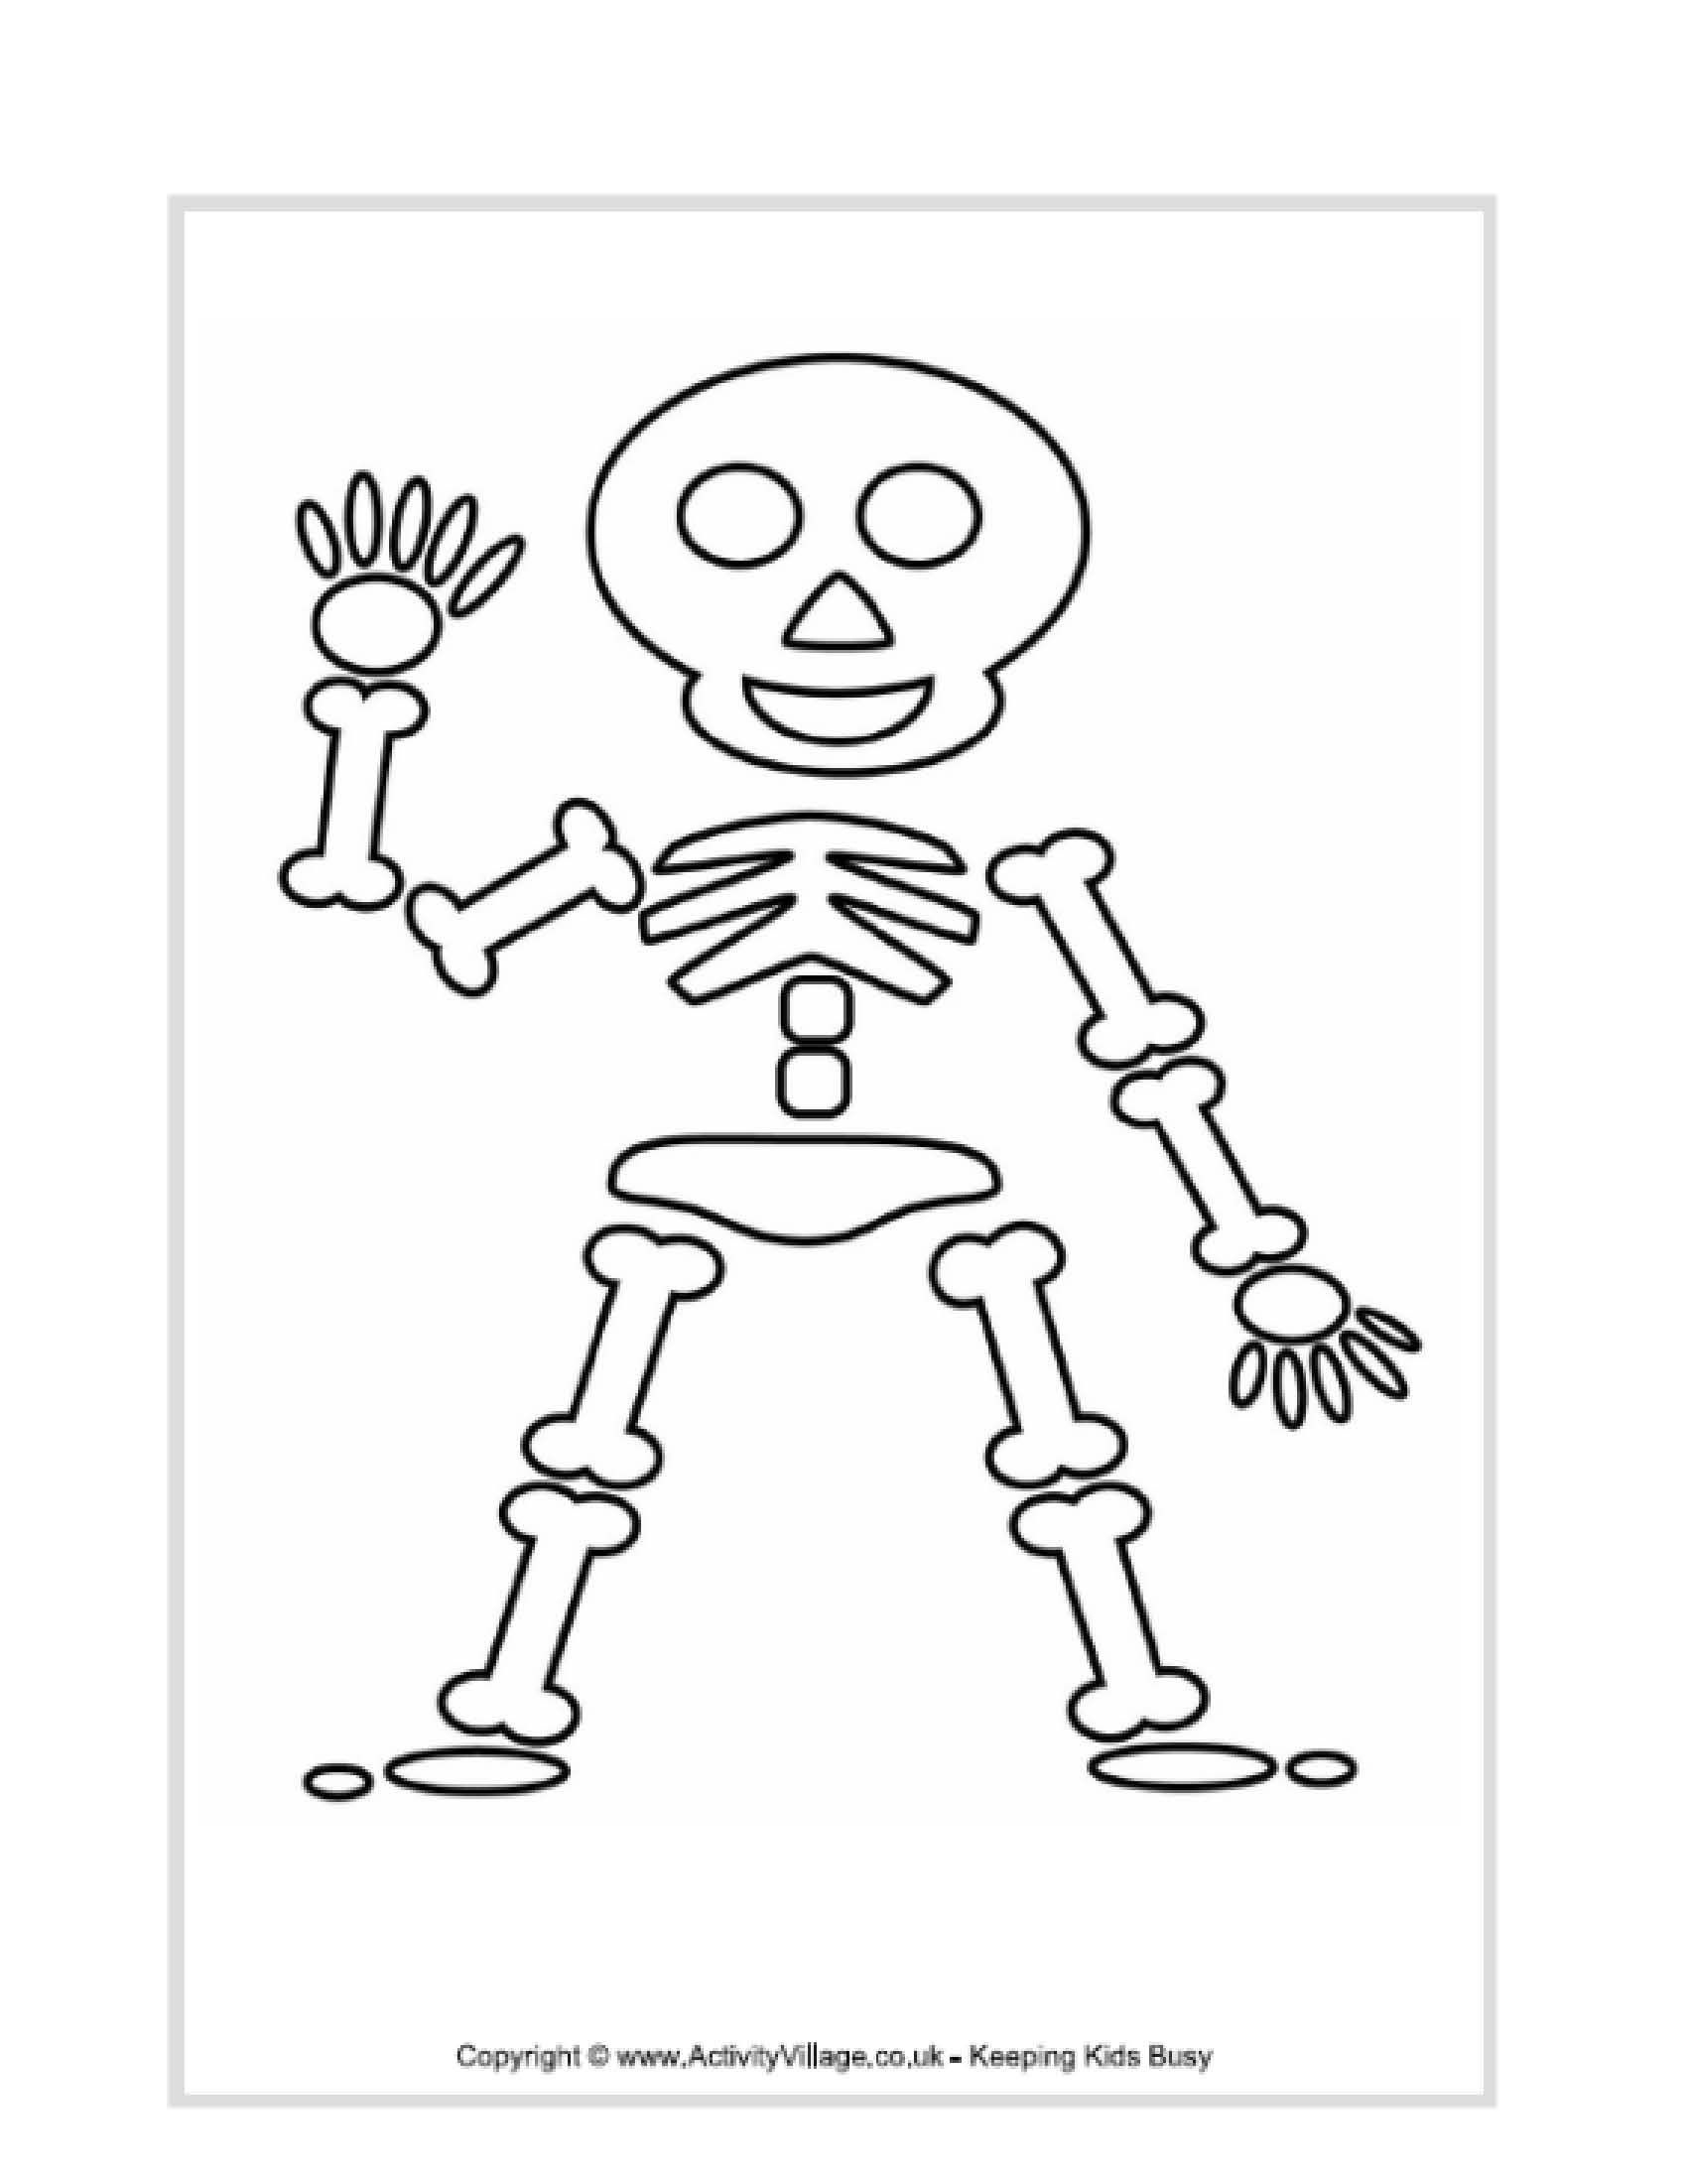 Skeleton Coloring Pages For Preschoolers | Kids Ideas | Halloween - Free Printable Skeleton Coloring Pages